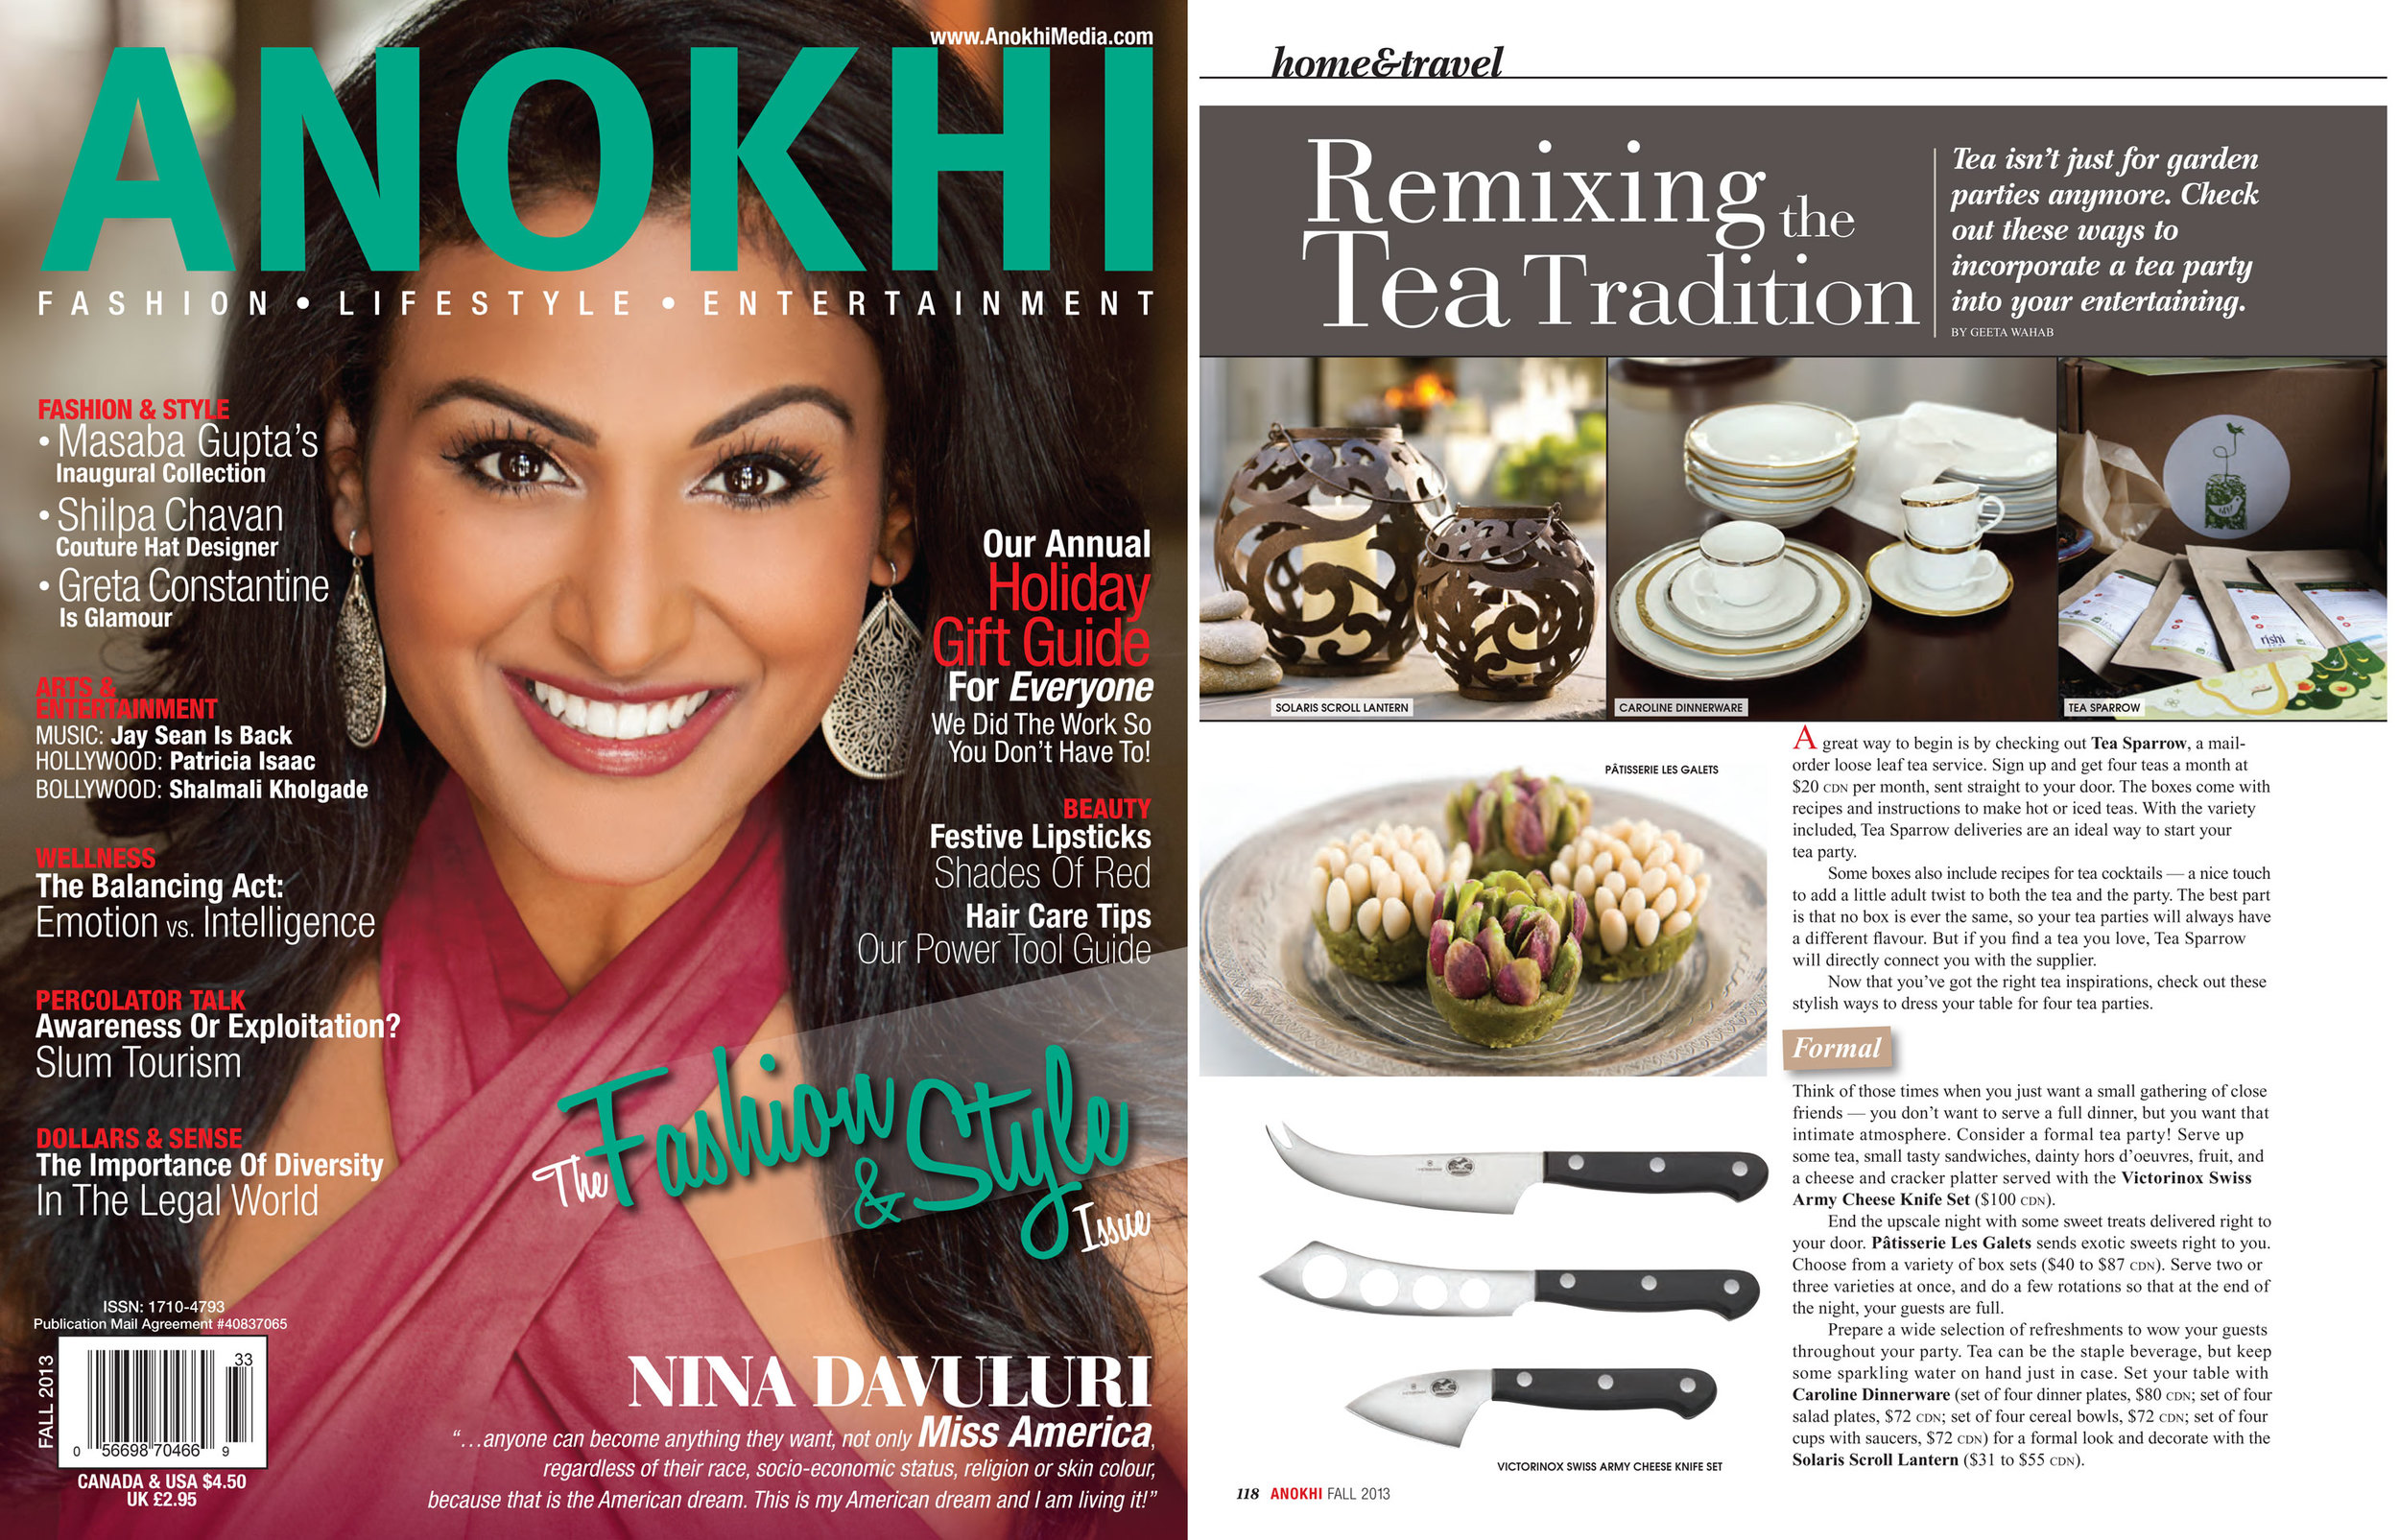 Teasparrow.com feature in Anokhi Magazine.